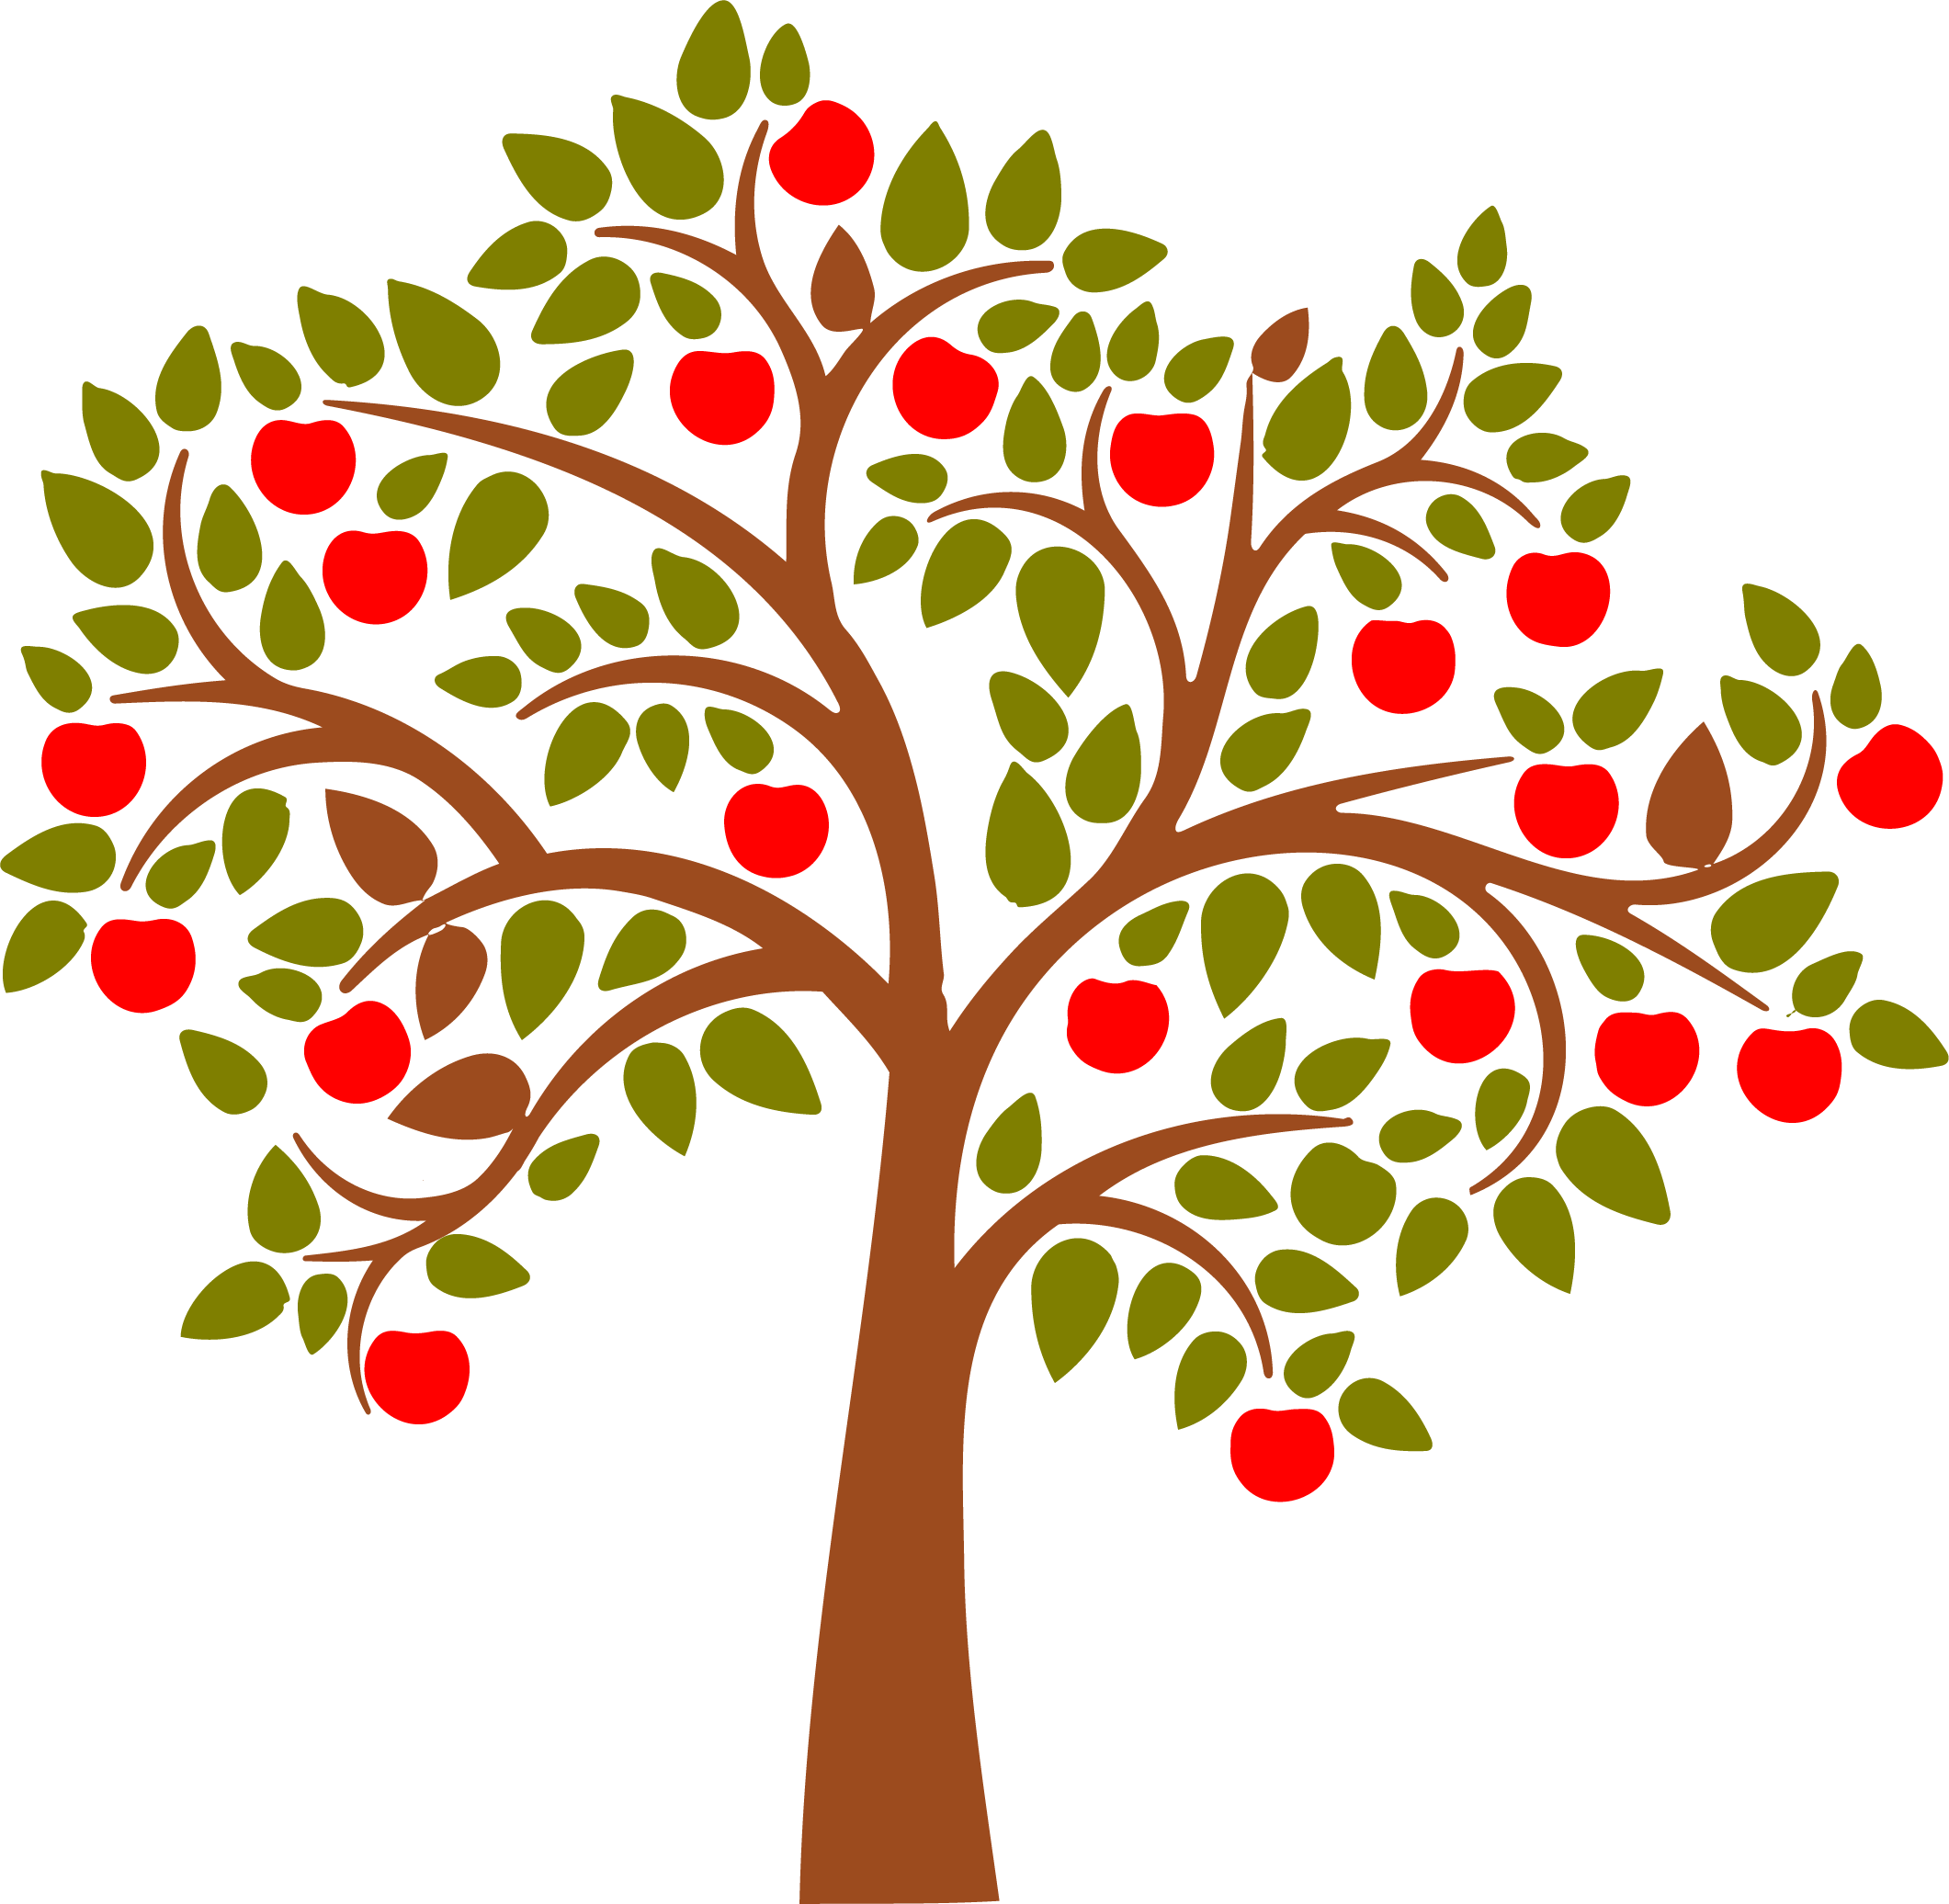 Leaf clipart apple tree. Isolated with leaves